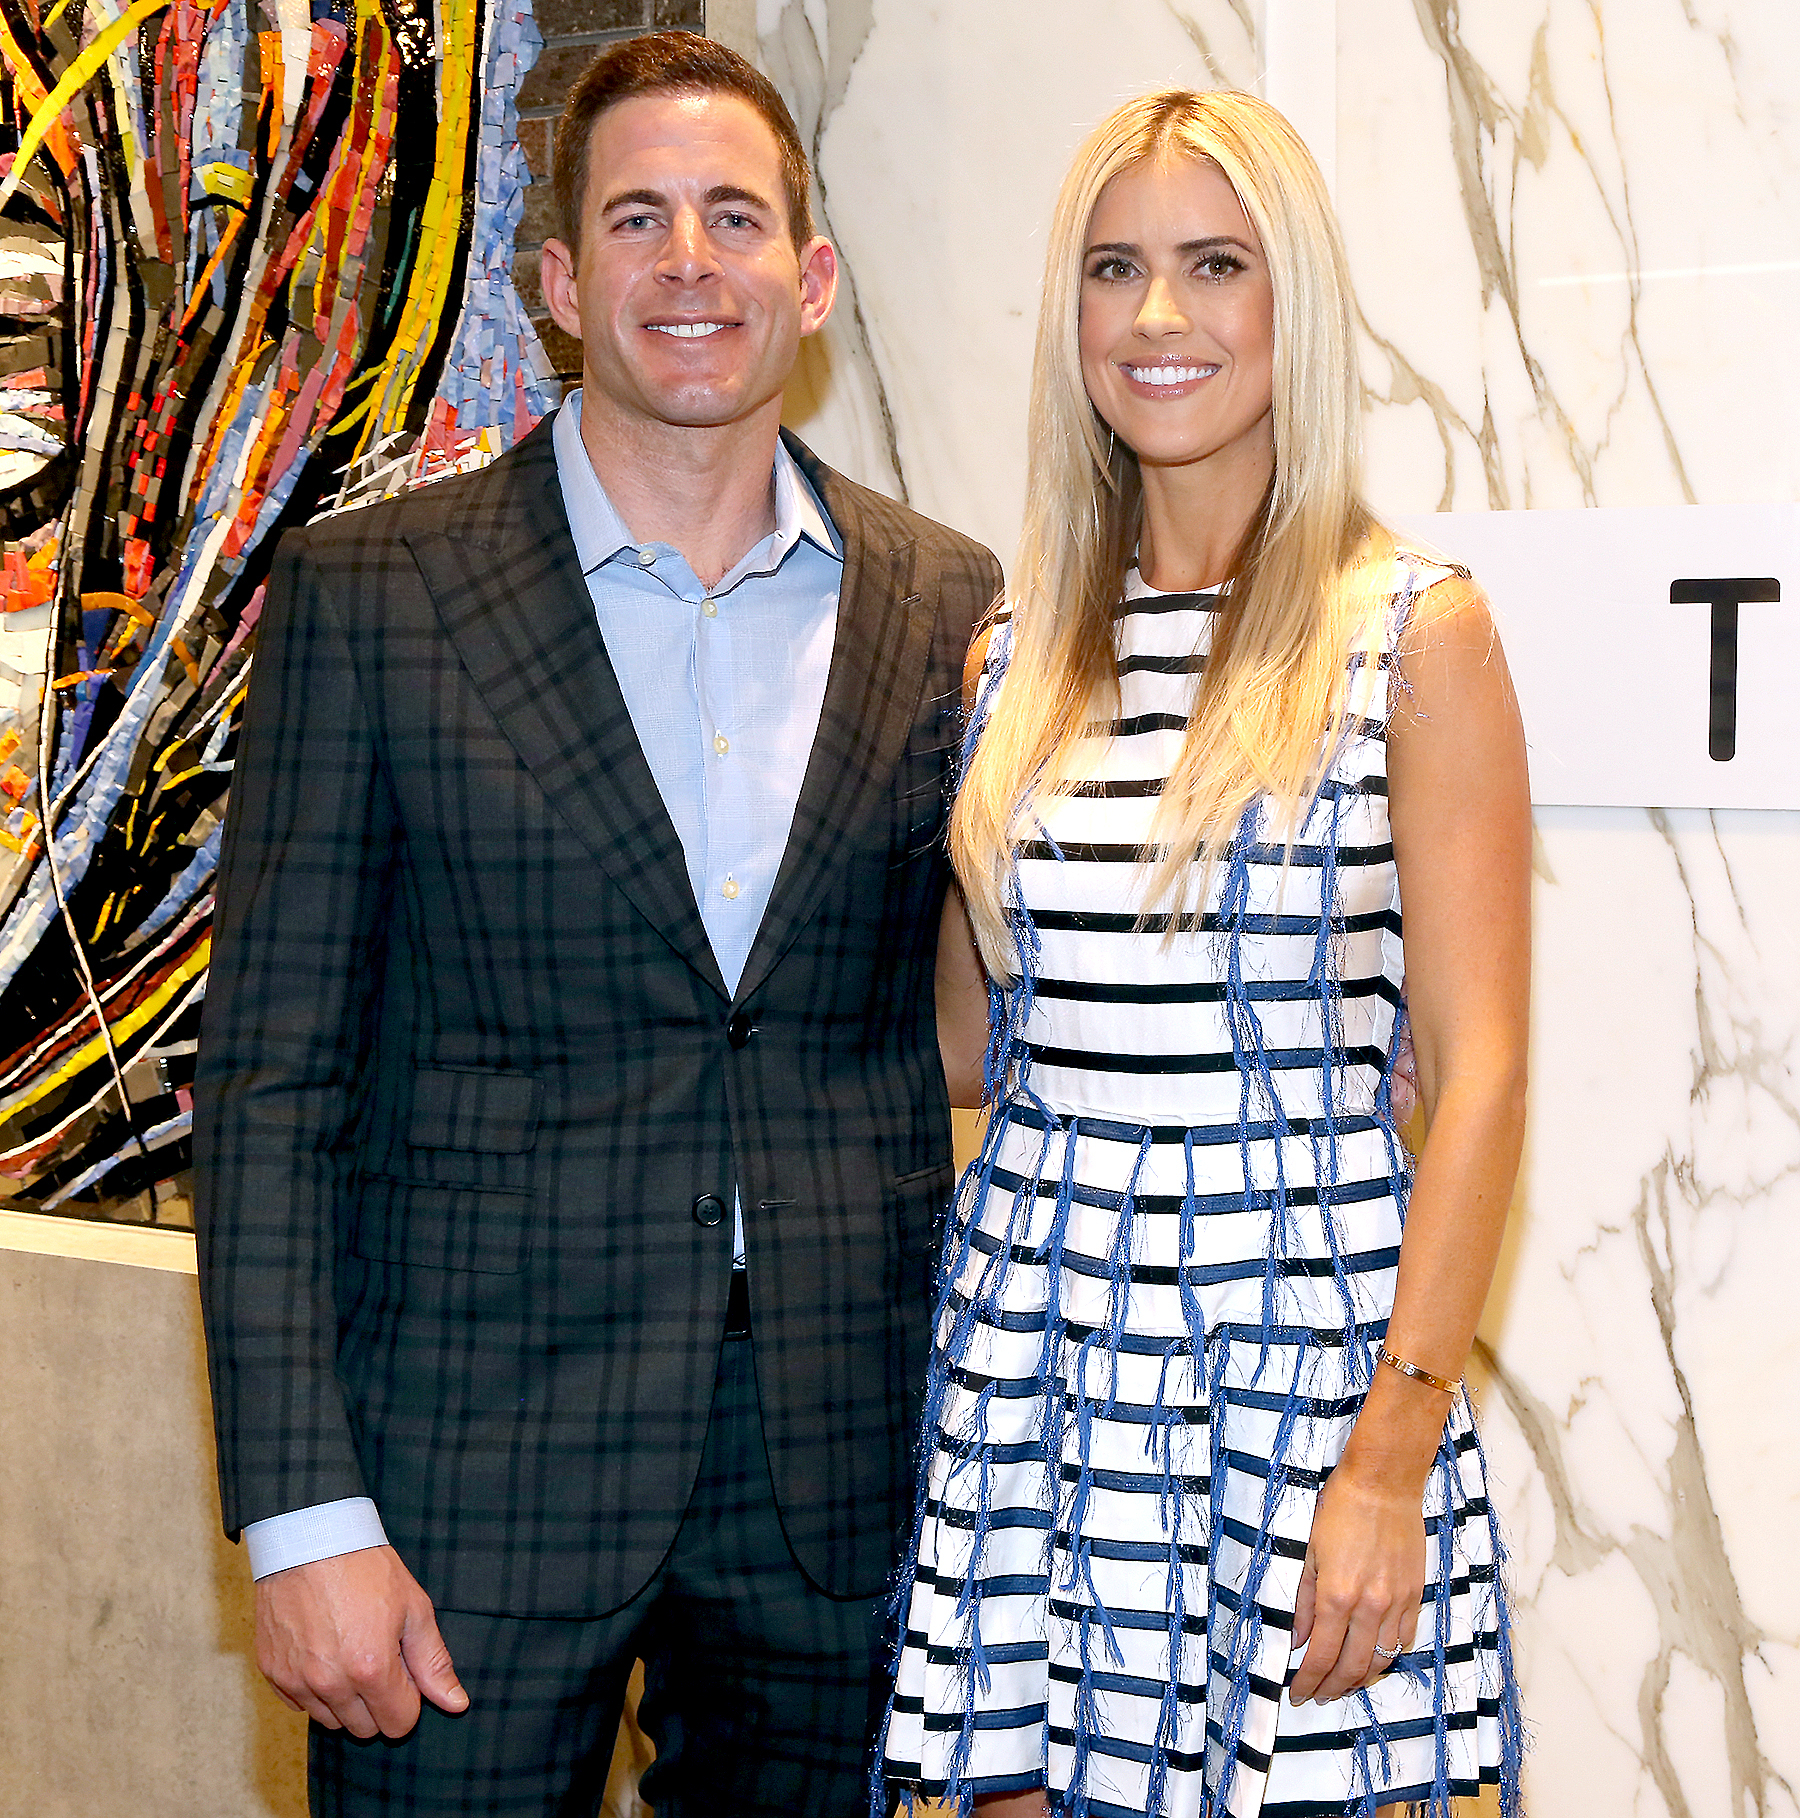 Tarek El Moussa and Christina El Moussa in New York on September 15, 2016 in New York City.